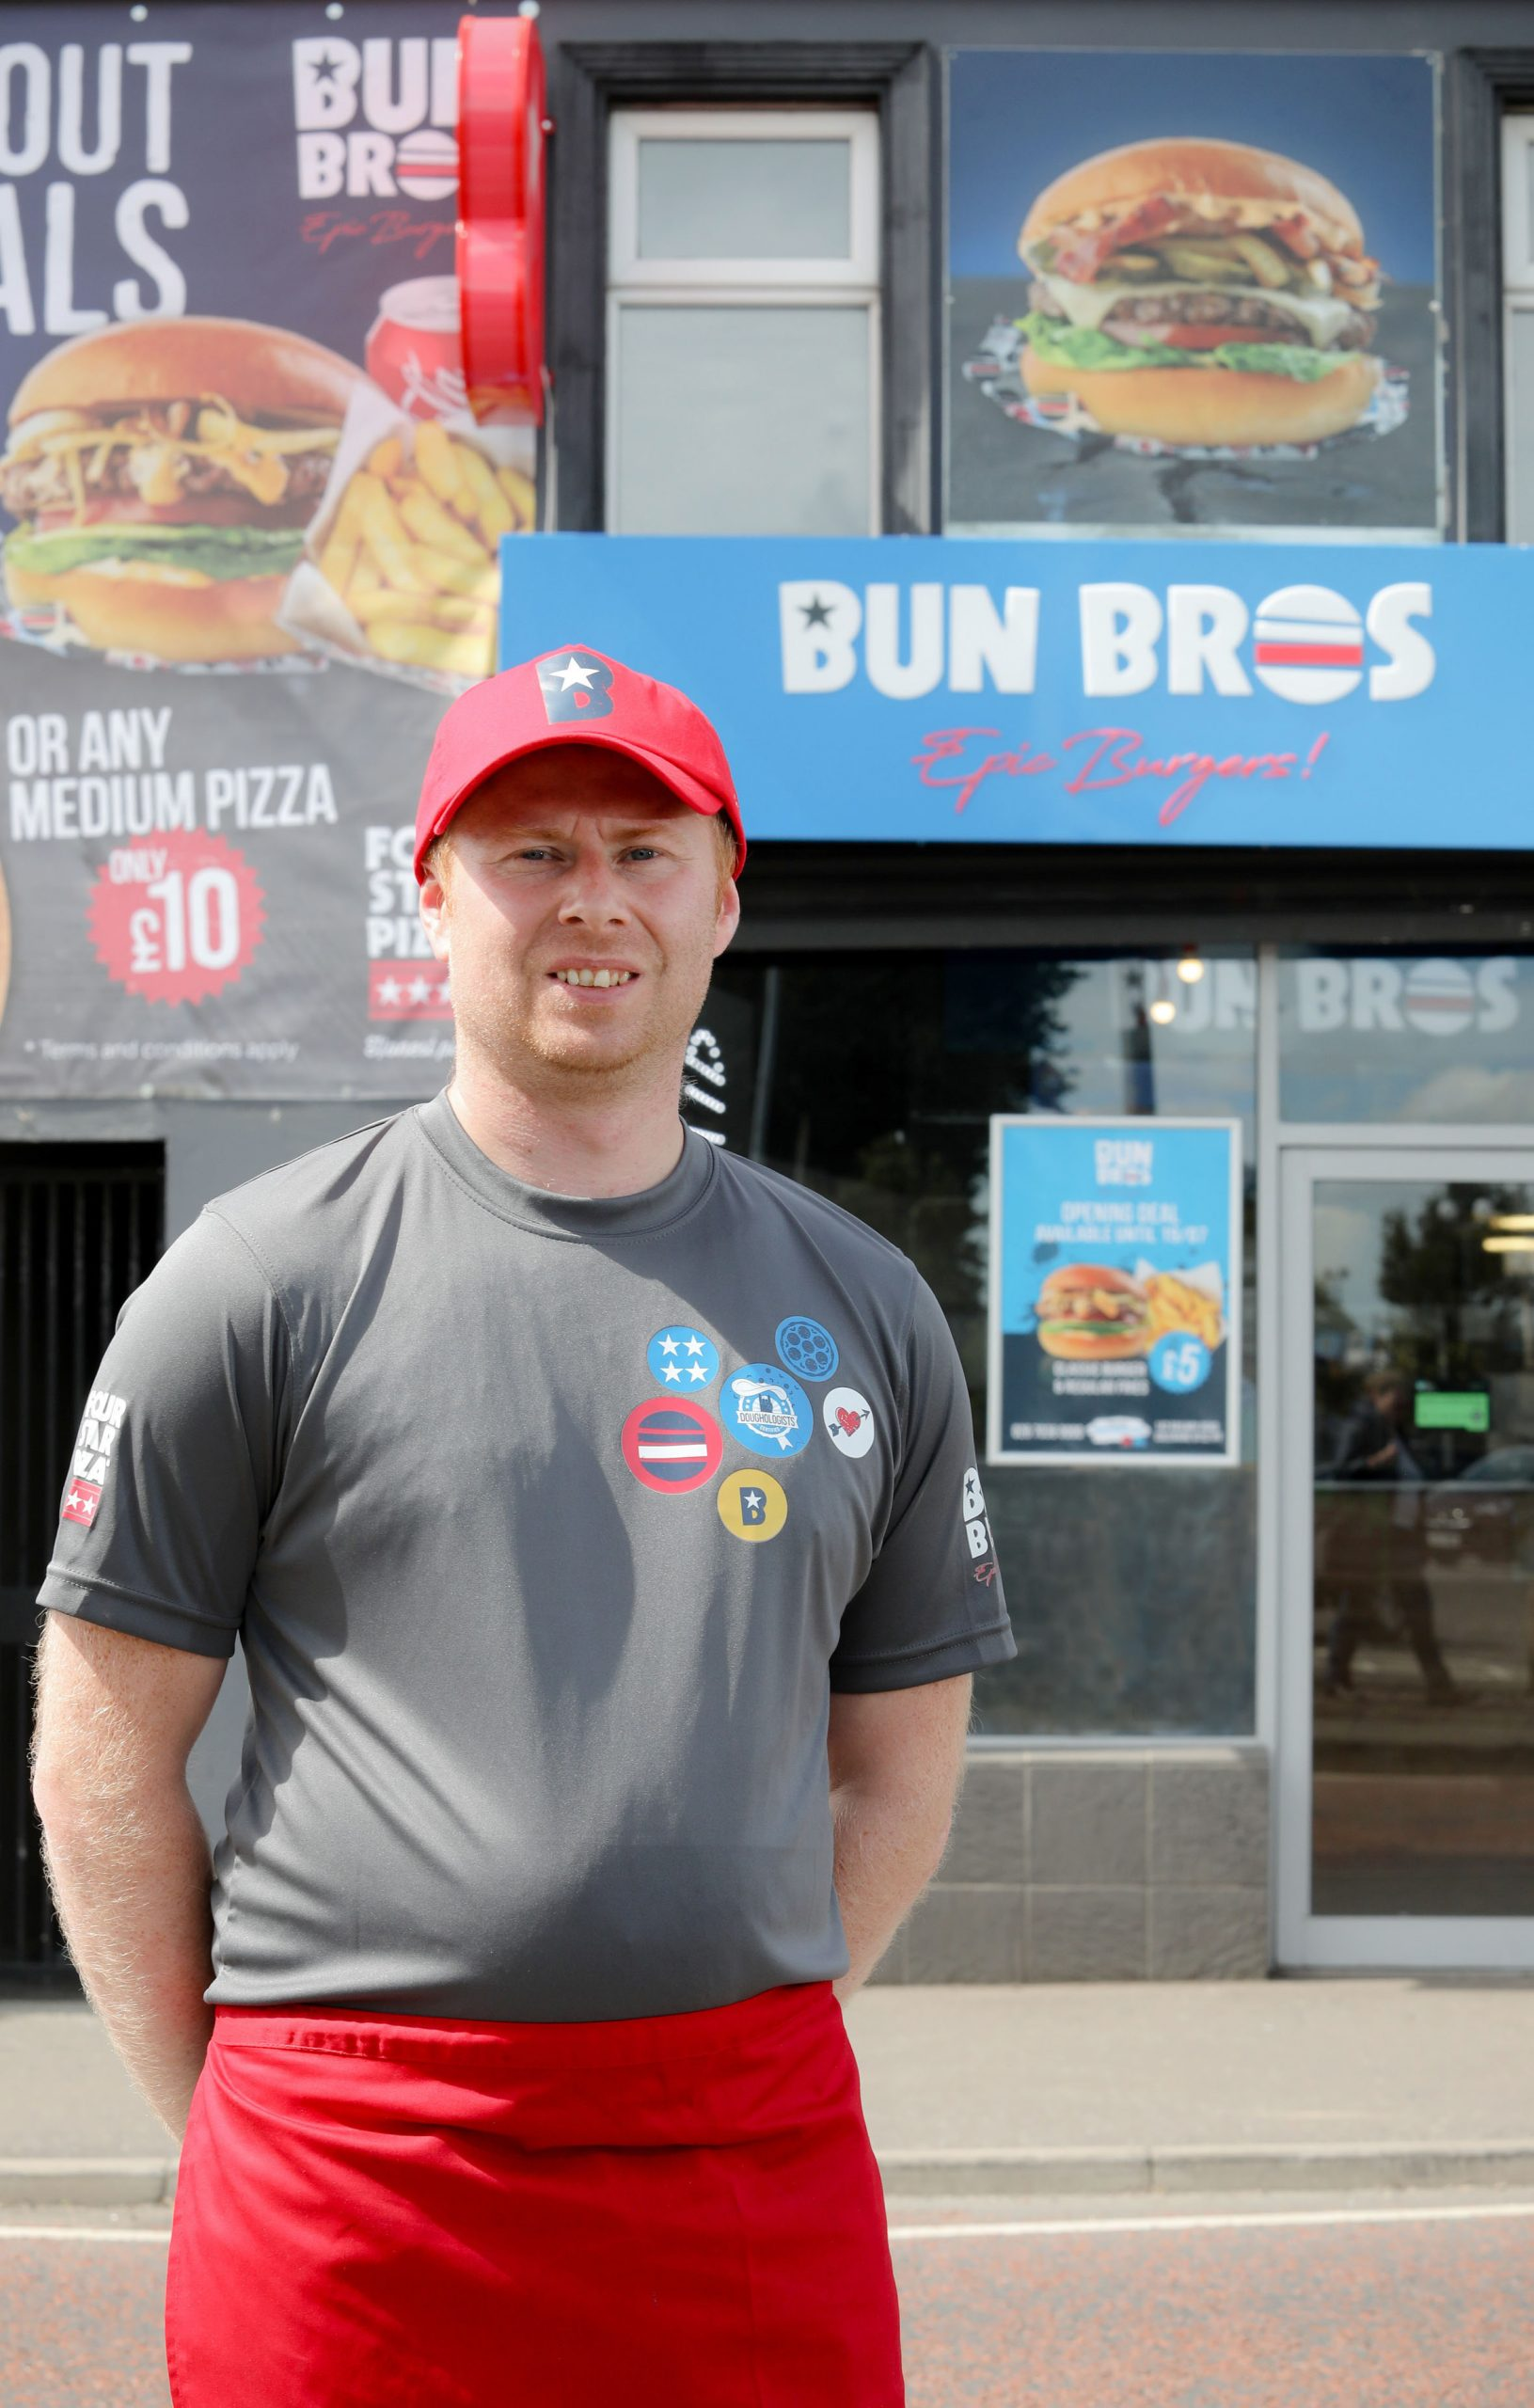 NEW burger chain Bun Bros has opened its first ever store in Northern Ireland, creating 12 new jobs in the Coleraine area after a £50,000 investment. The store will offer burger lovers a vast array of made-to-order burgers produced using only locally sourced Irish Beef. Pictured at the launch is Store owner Darren Colgan. For more information on Bun Bros or to order, go to https://bunbros.co.uk or check the company out on social media at https://www.facebook.com/BunBrosColeraine Photo by Philip Magowan / Press Eye